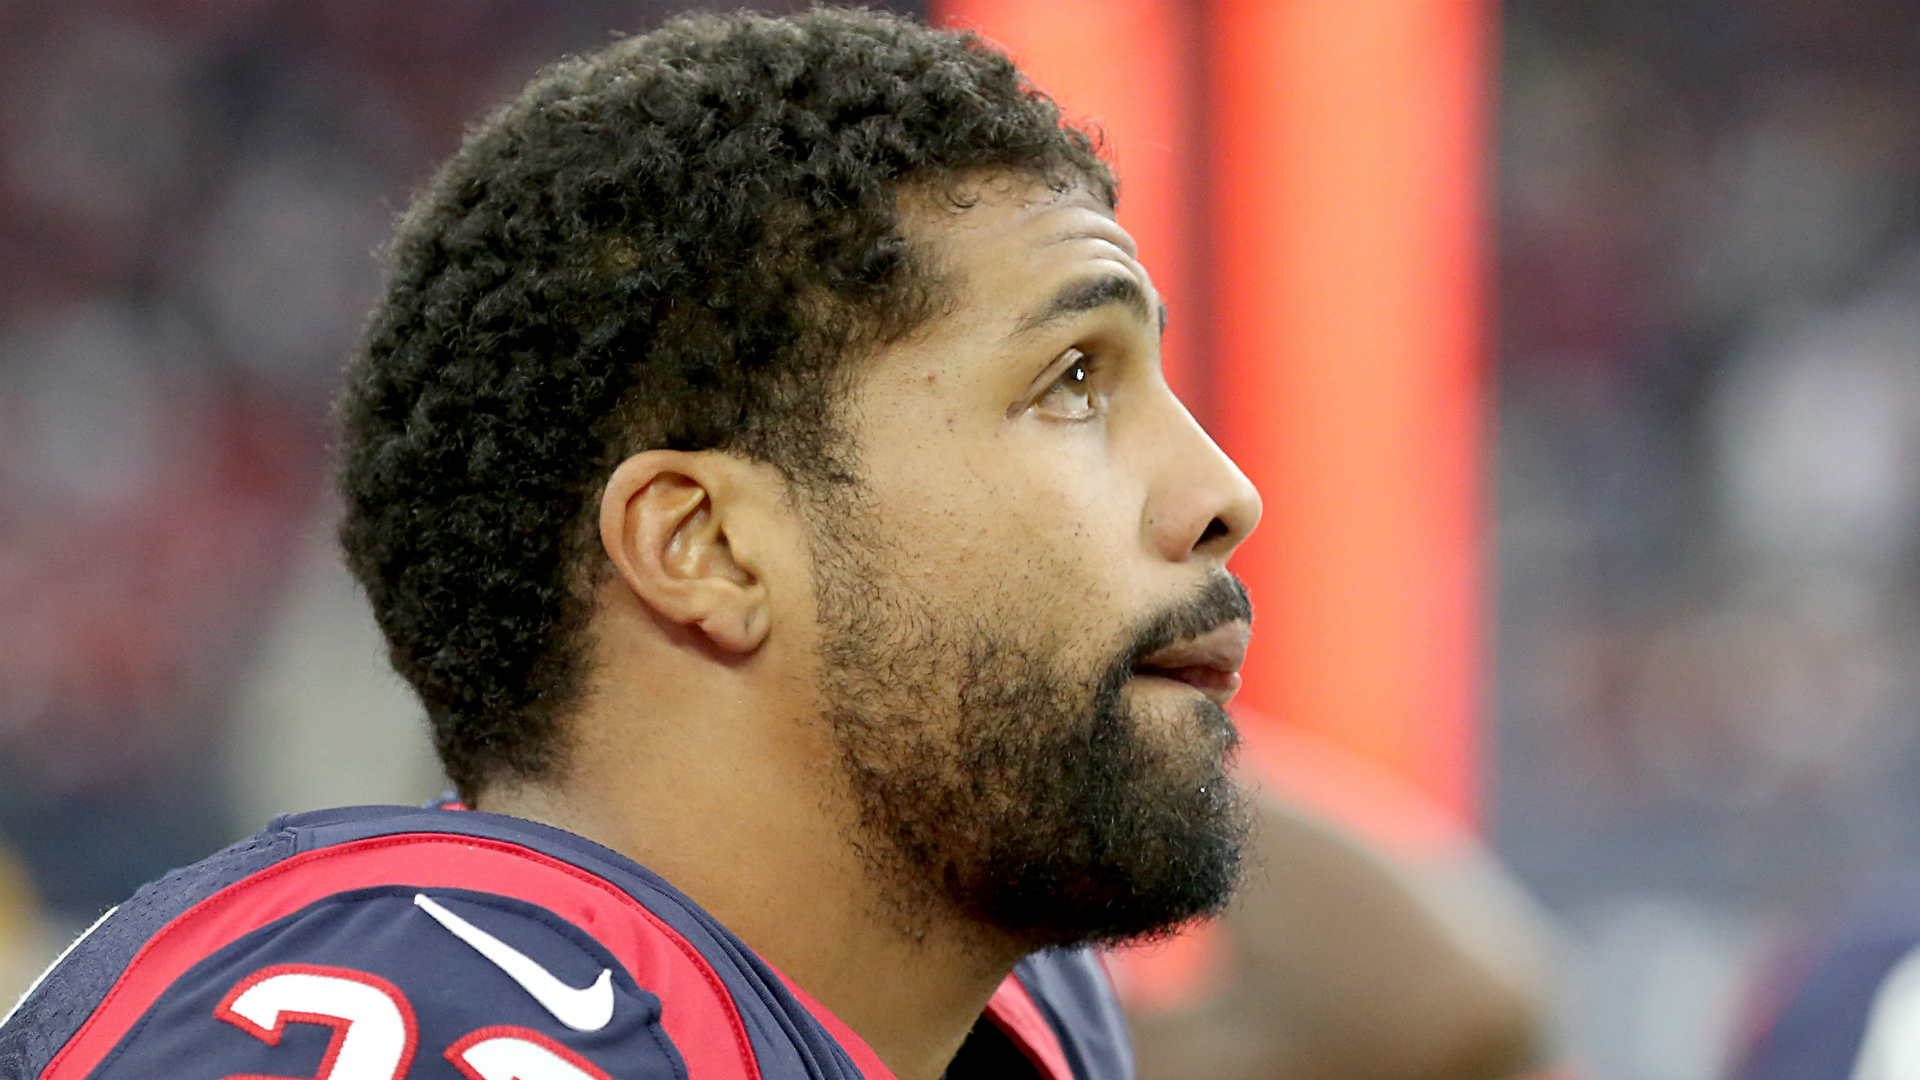 Report: Texans' Arian Foster sustains groin injury, will need surgery